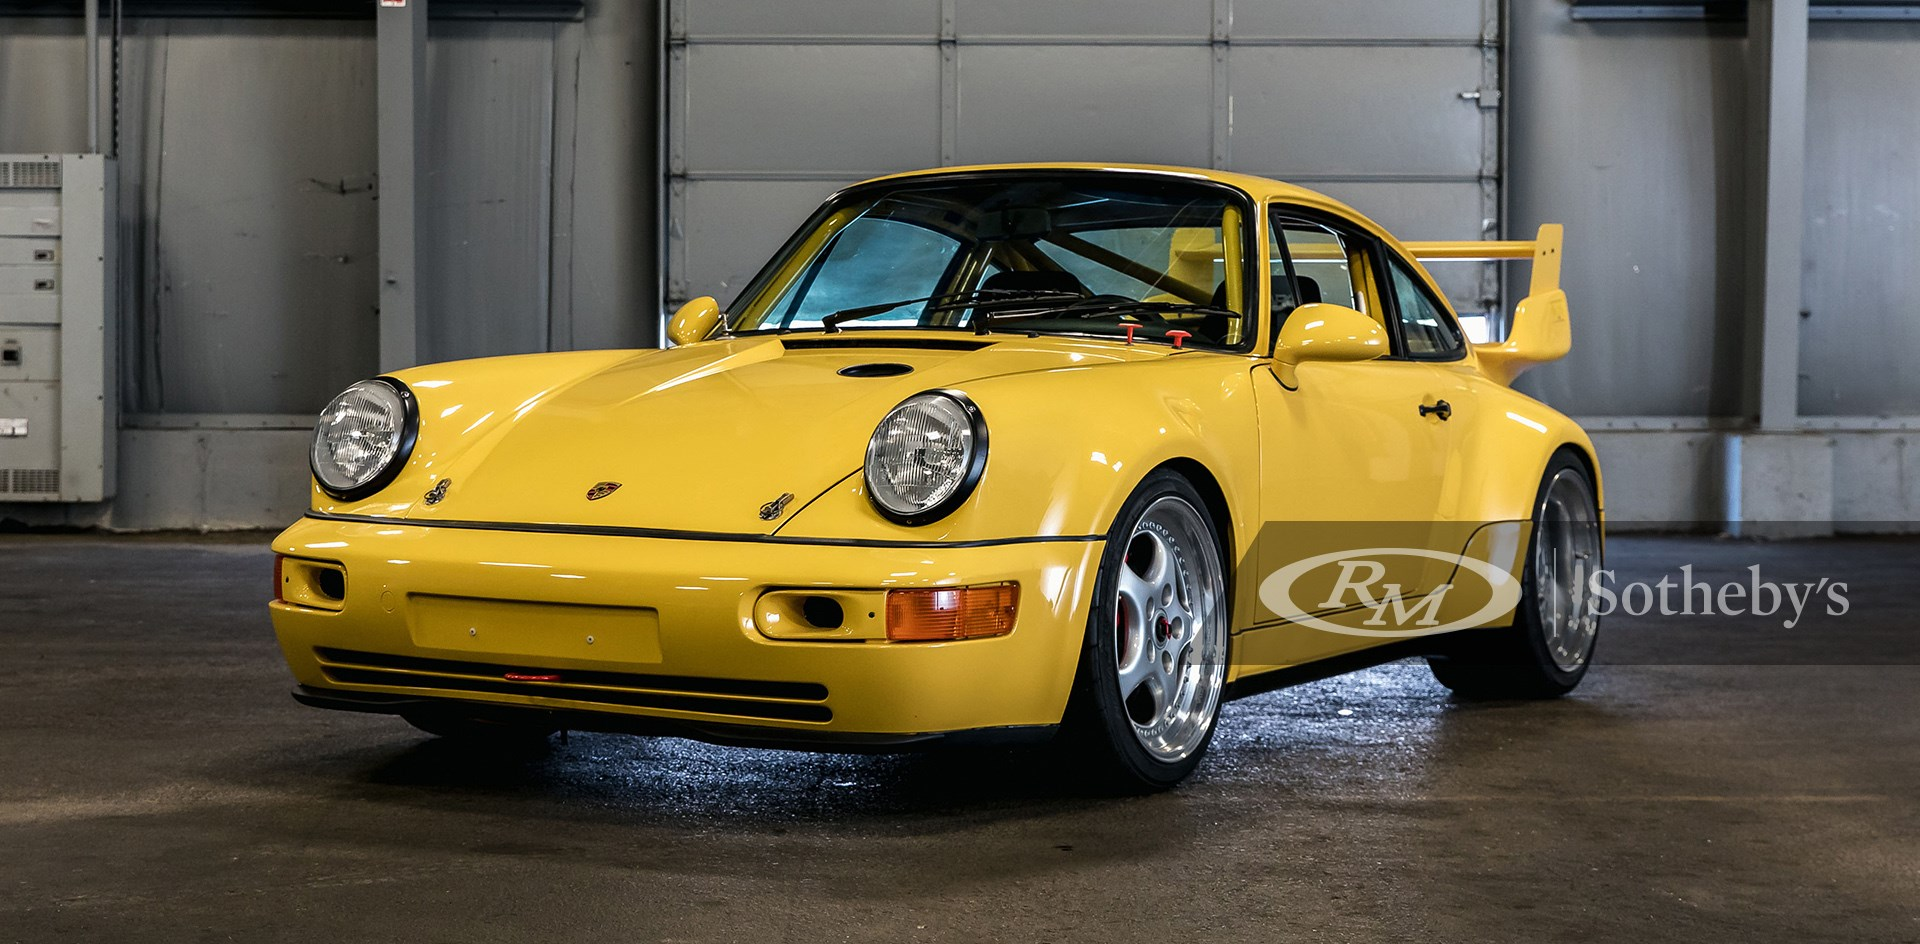 1993 Porsche 911 Carrera RSR 3.8 available at RM Sotheby's Amelia Island Live Auction 2021